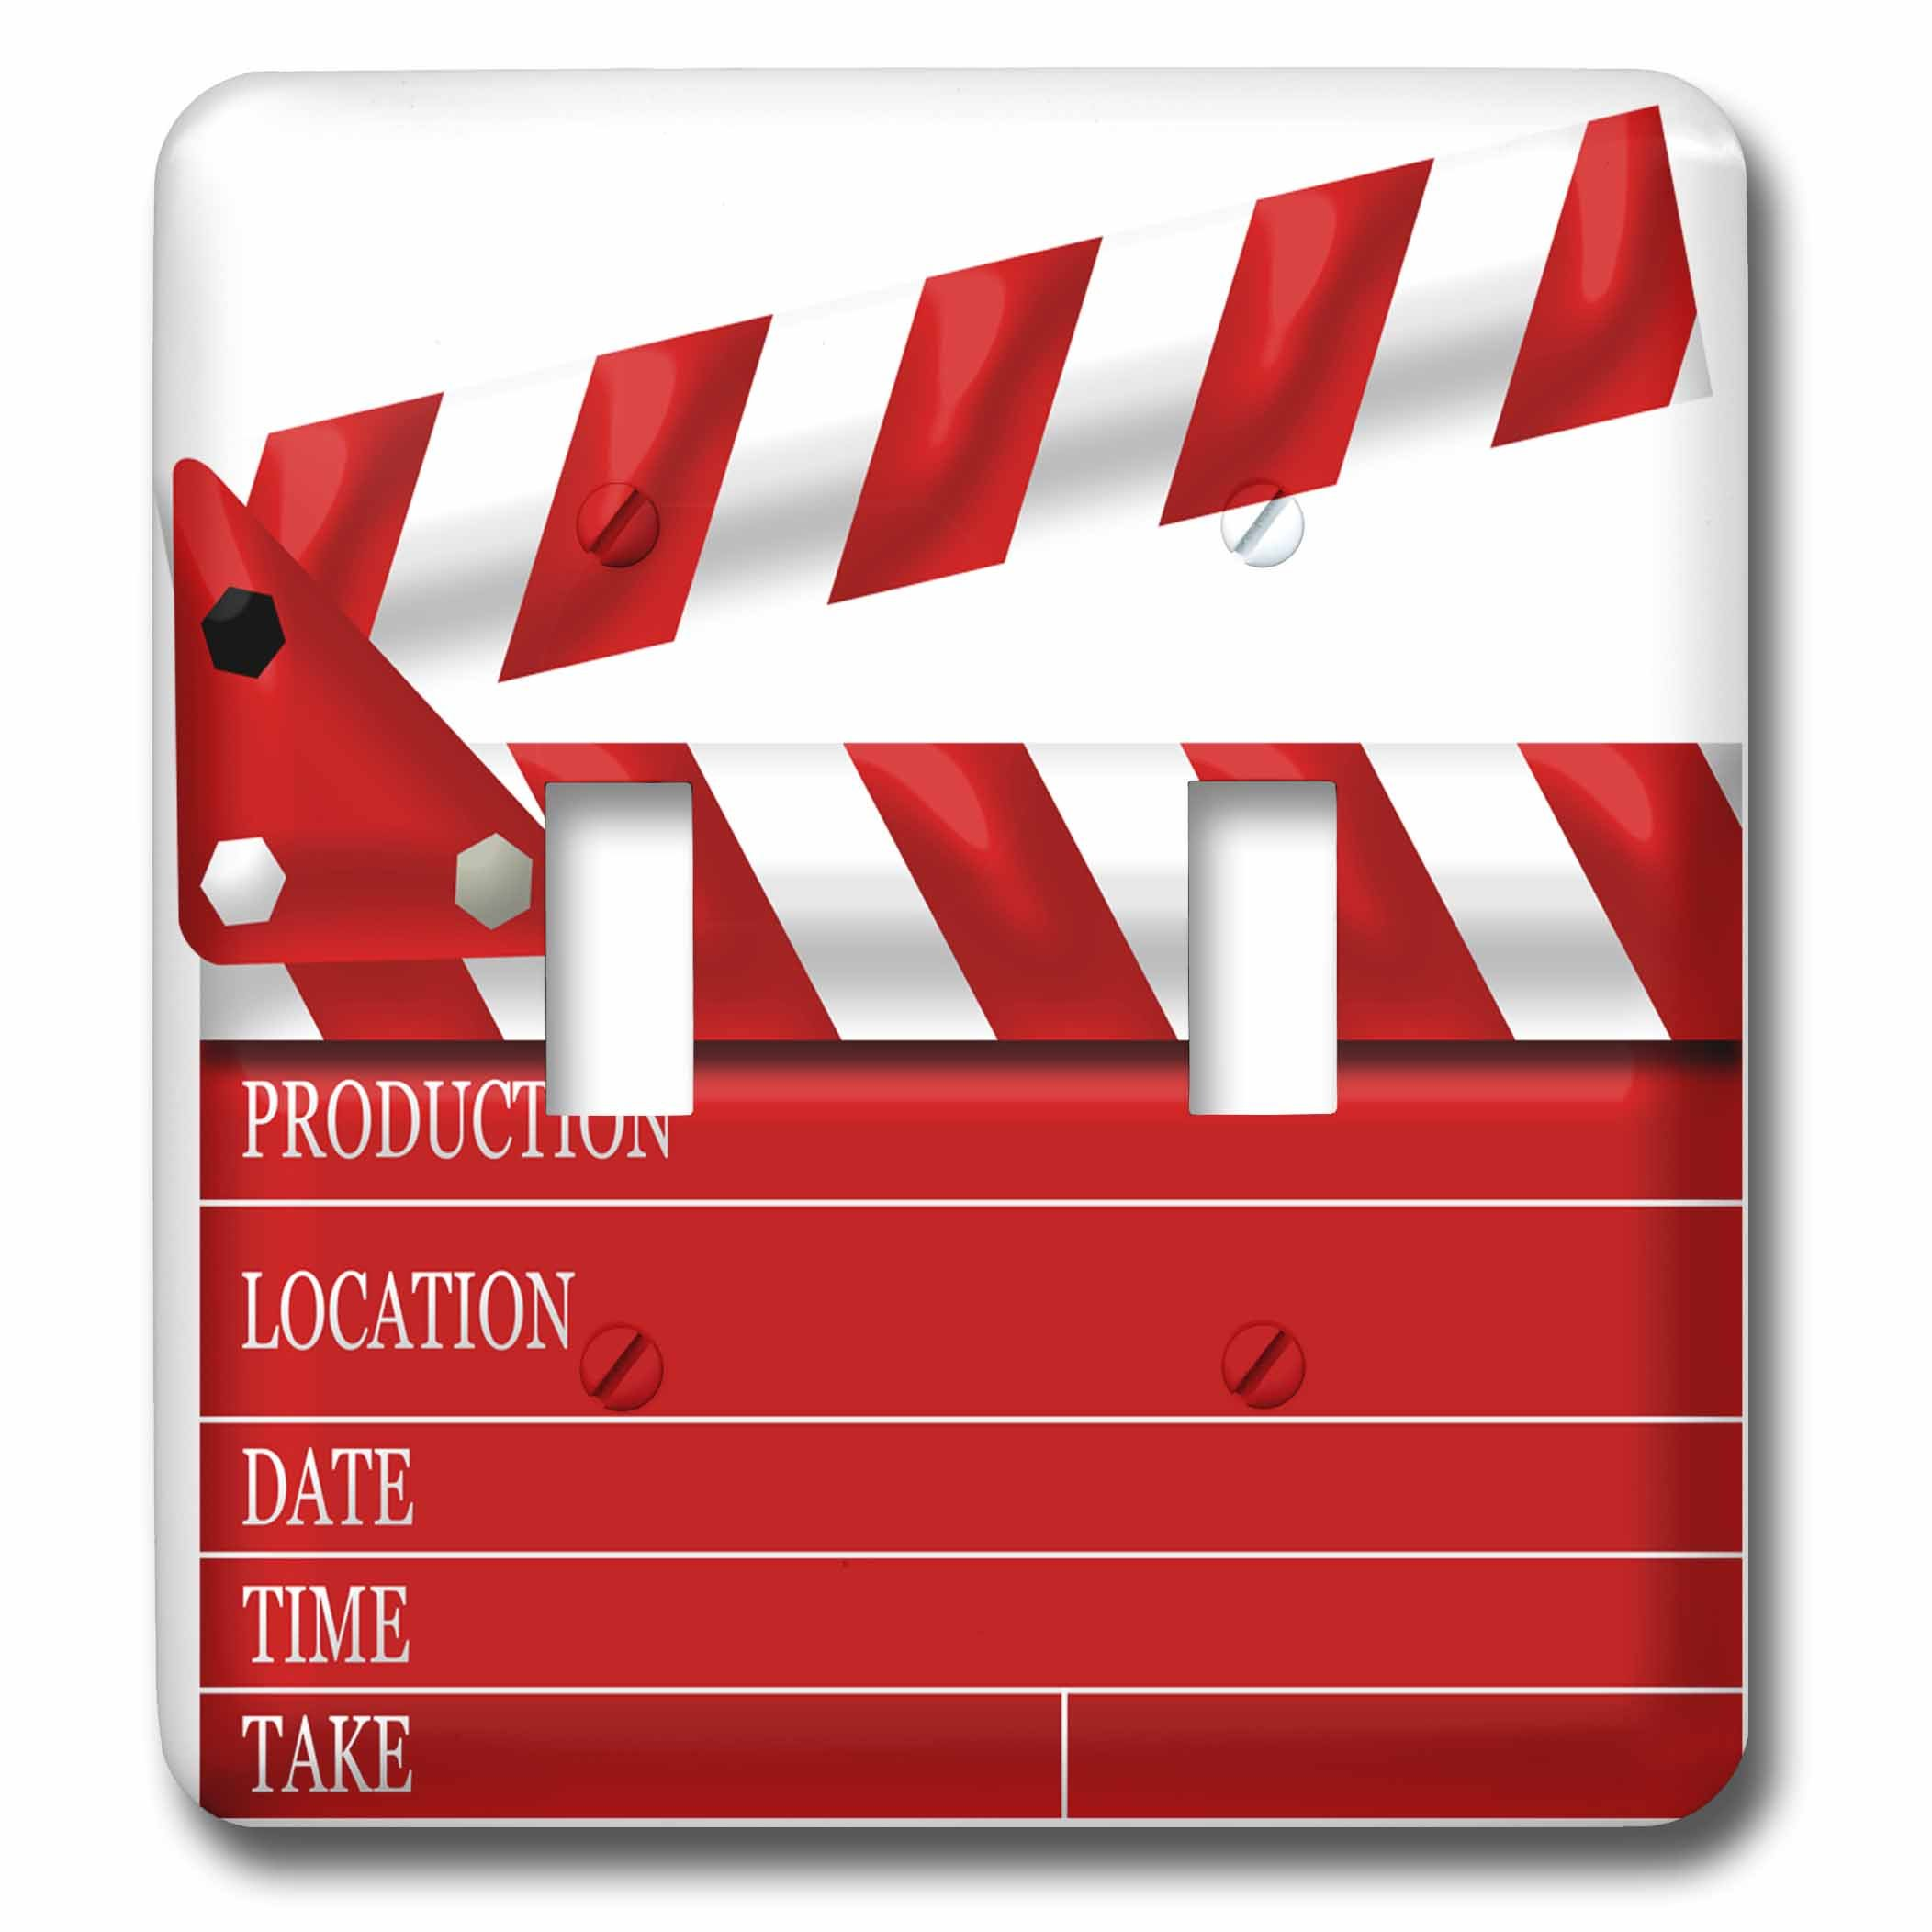 3D Rose lsp_222696_2 Movie Clap Board Illustration in Red and White Double Toggle Switch